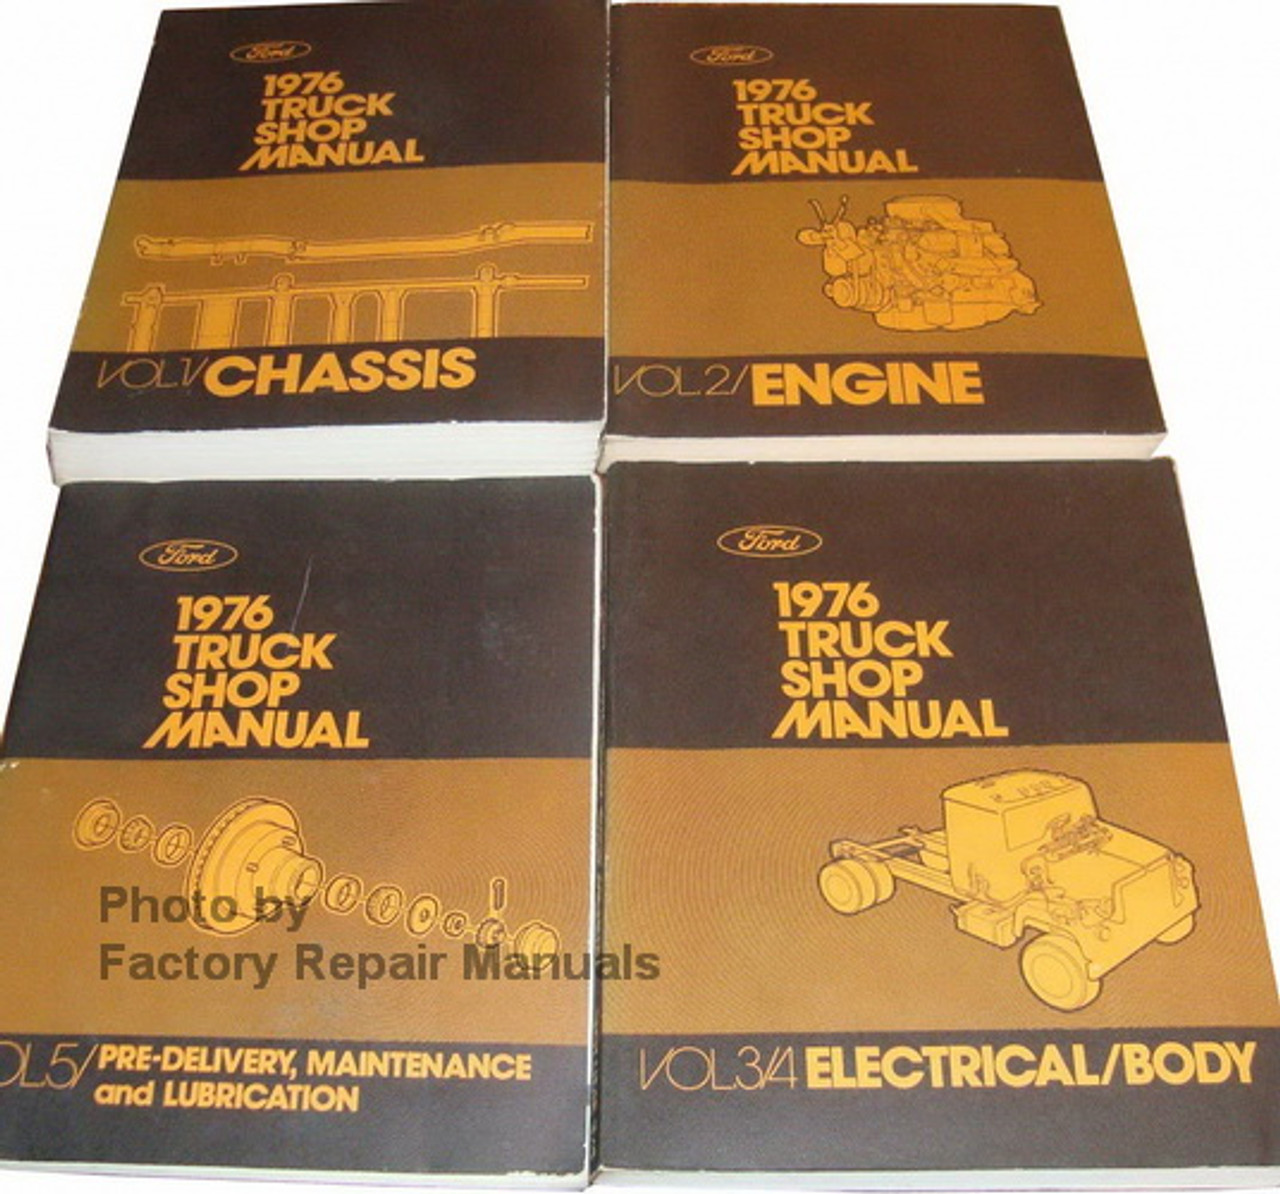 76 1976 Ford Econoline owners manual